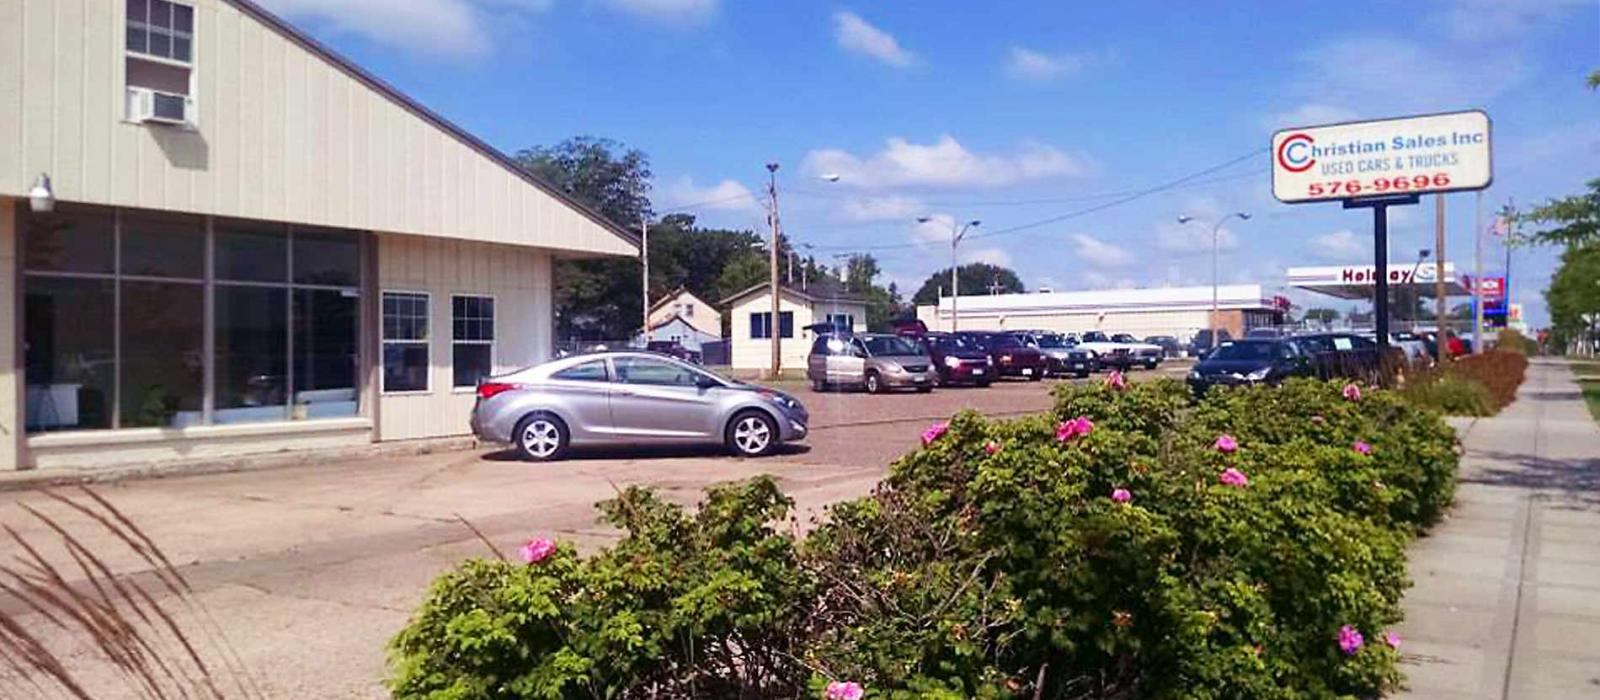 Christian Auto Sales Used Cars Anoka Mn Pre Owned Autos Minnesota